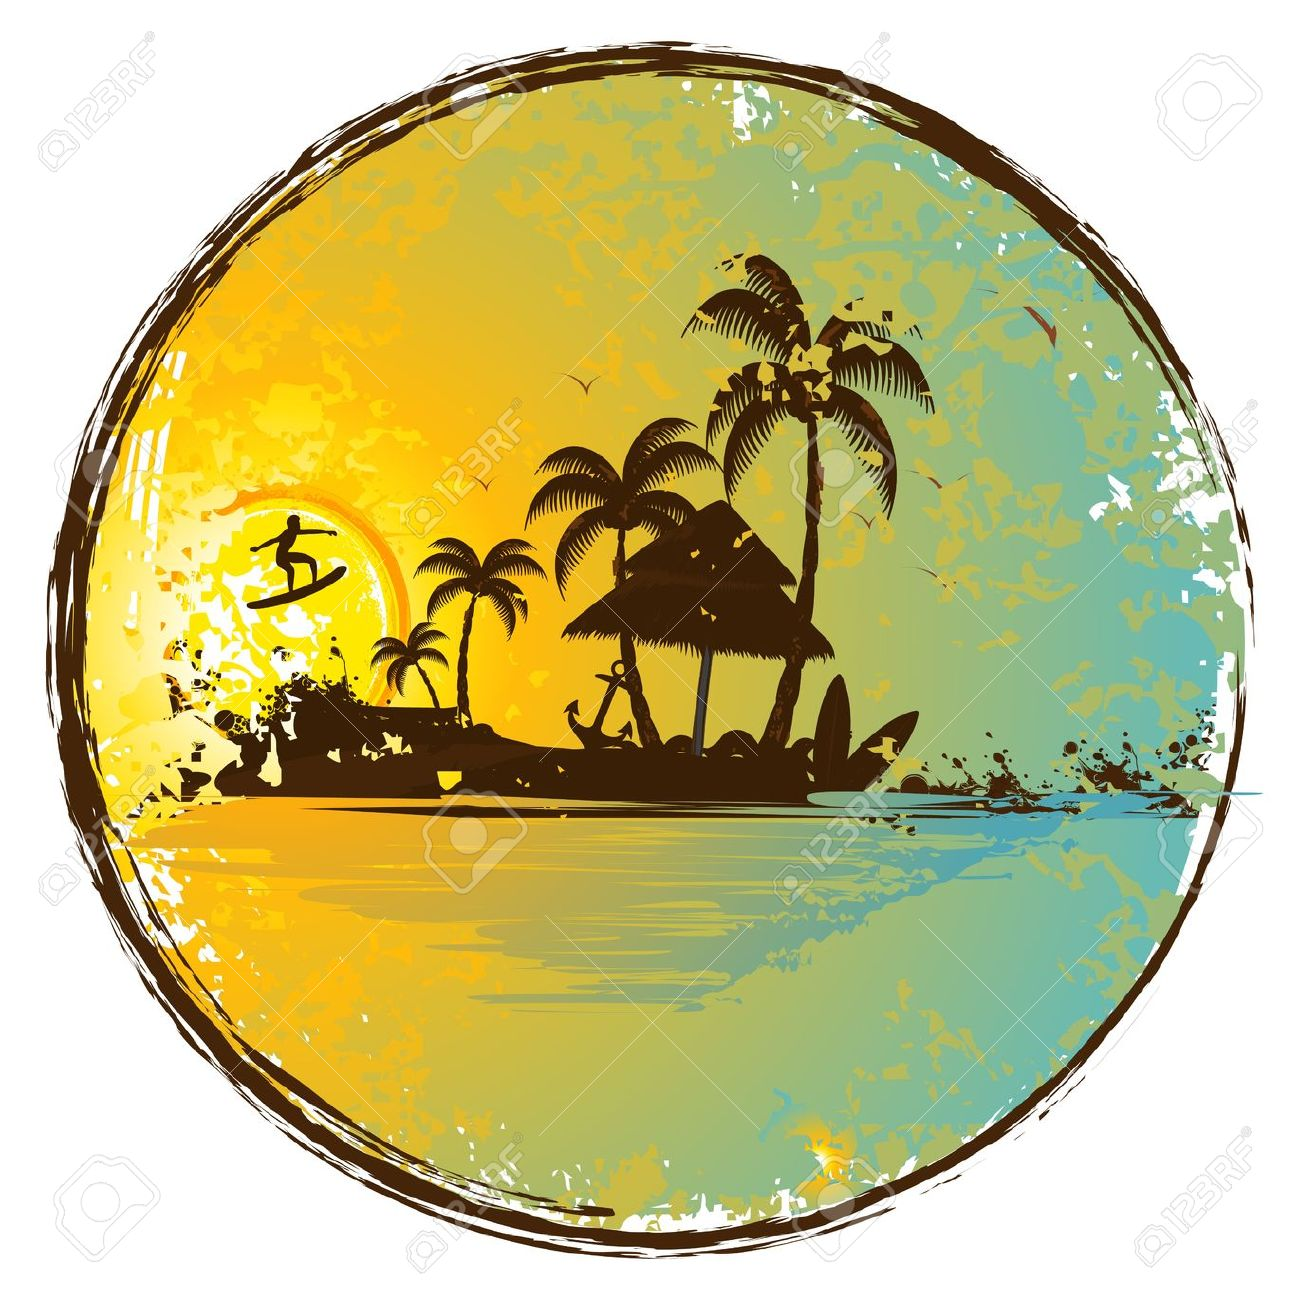 Palm tree sunset clipart 400 pixel by 150 pxl jpg royalty free Palm tree sunset clipart - ClipartFest jpg royalty free